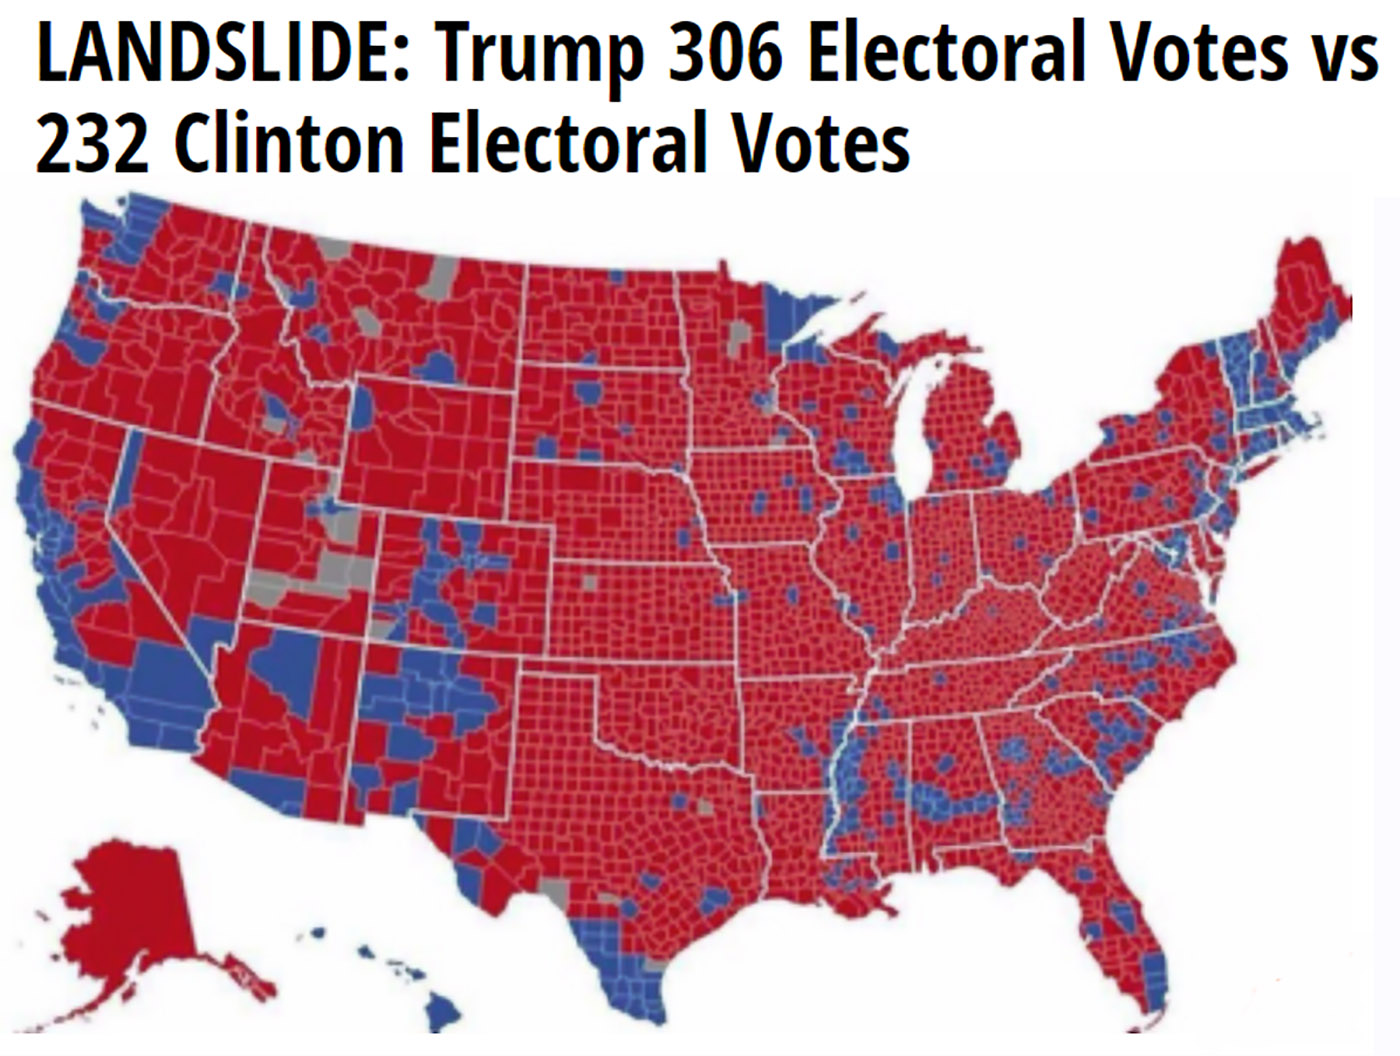 Trump 306 vs. Clinton 232